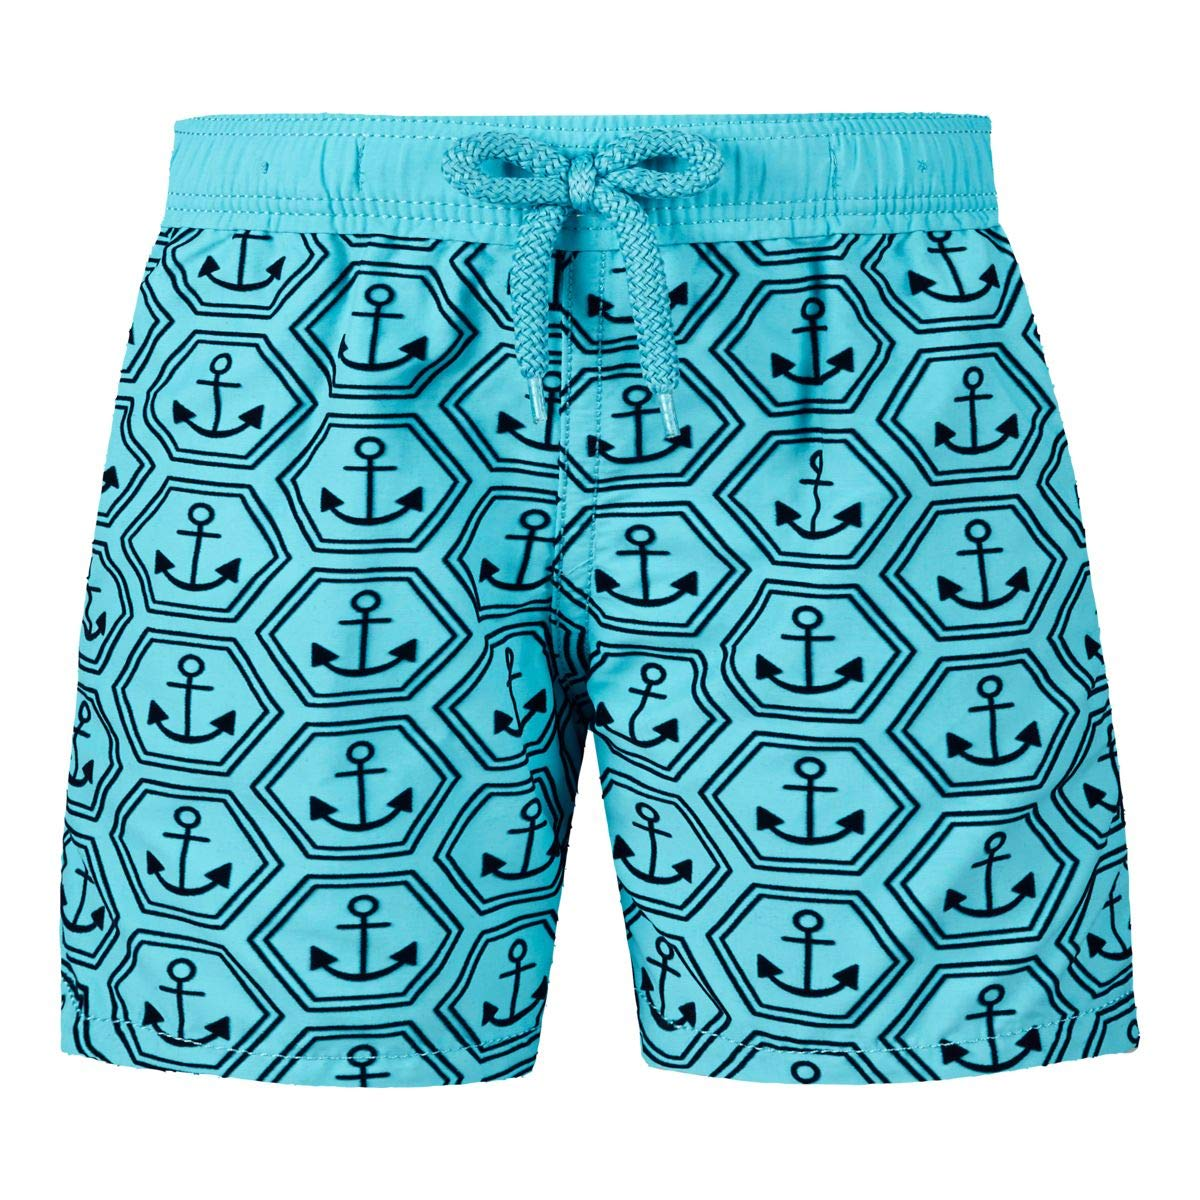 Vilebrequin - Boys Swimtrunks Flocked Ancre De Chine - Tropezian Blue - 2YRS